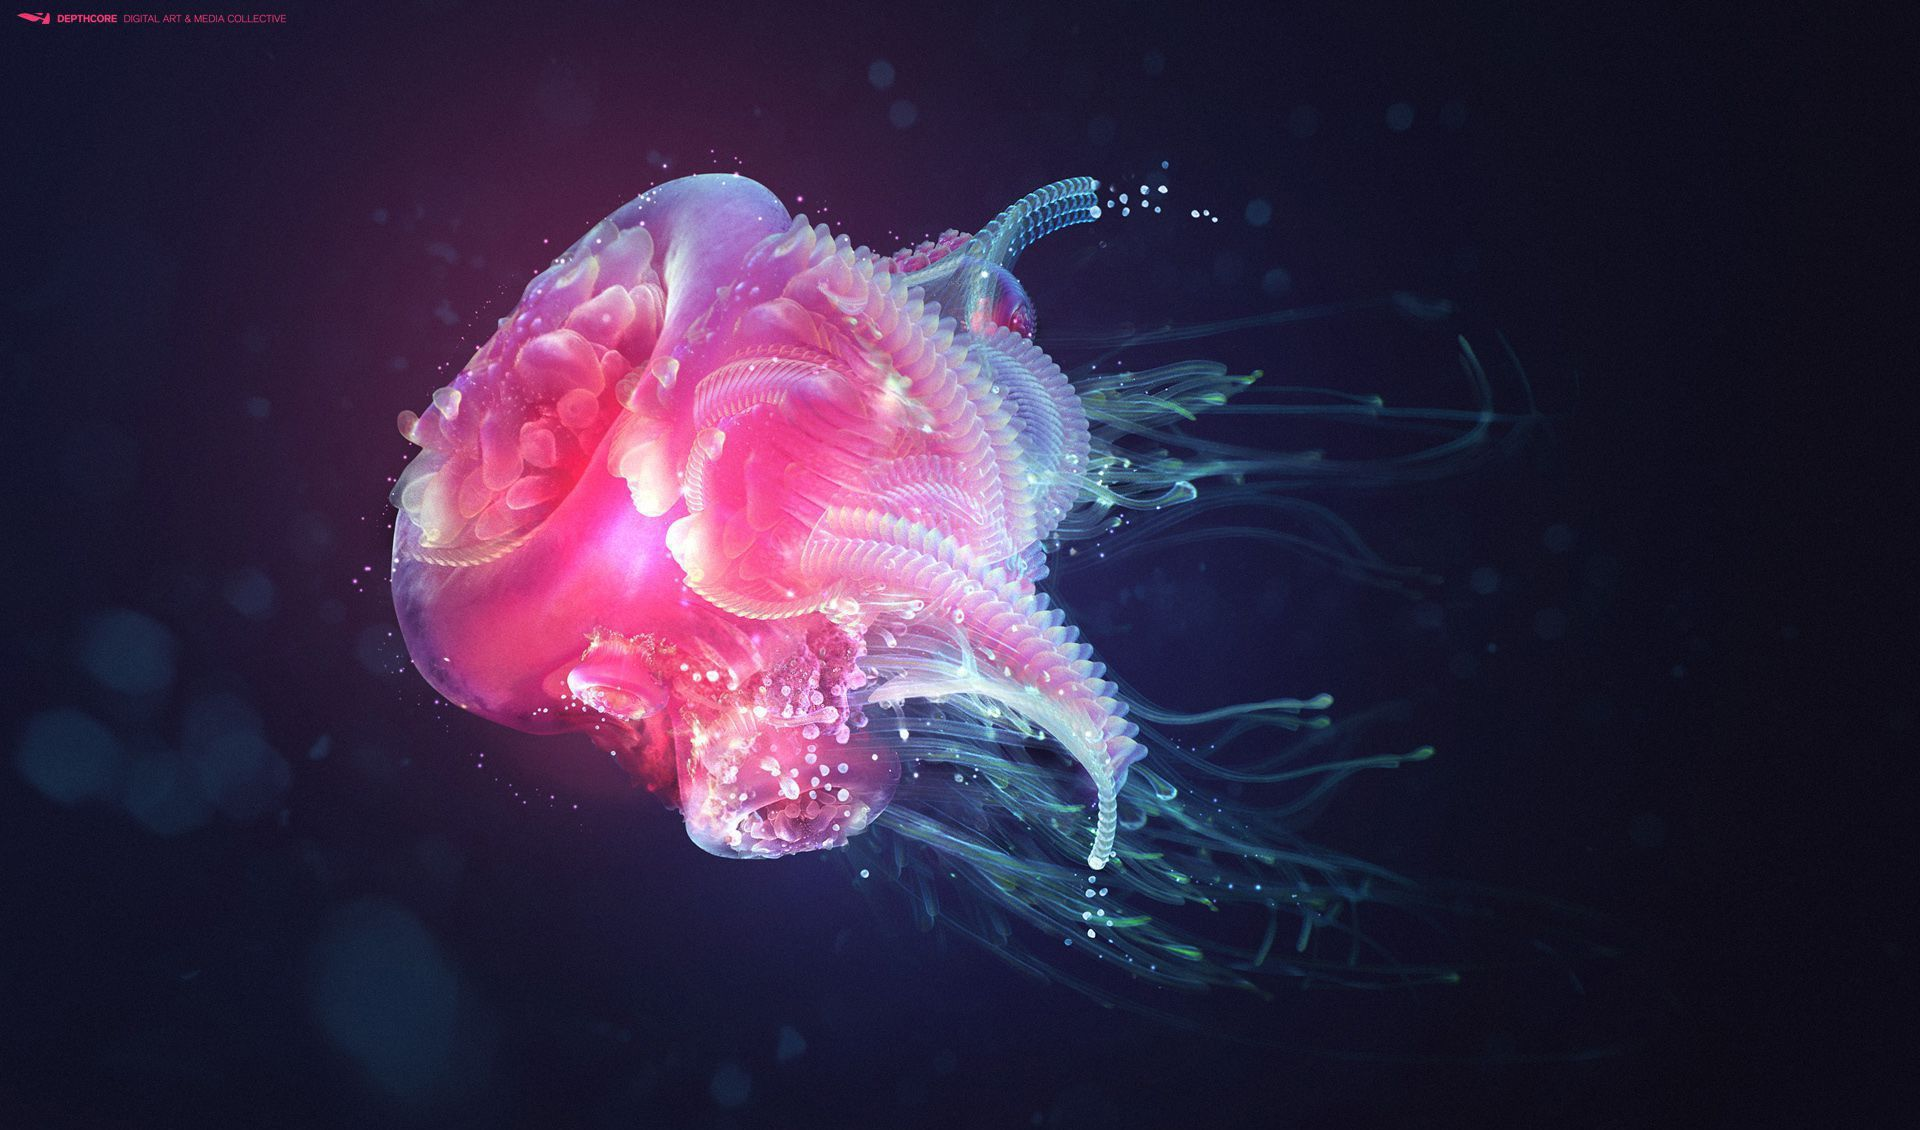 Box Jellyfish High Quality Wallpapers